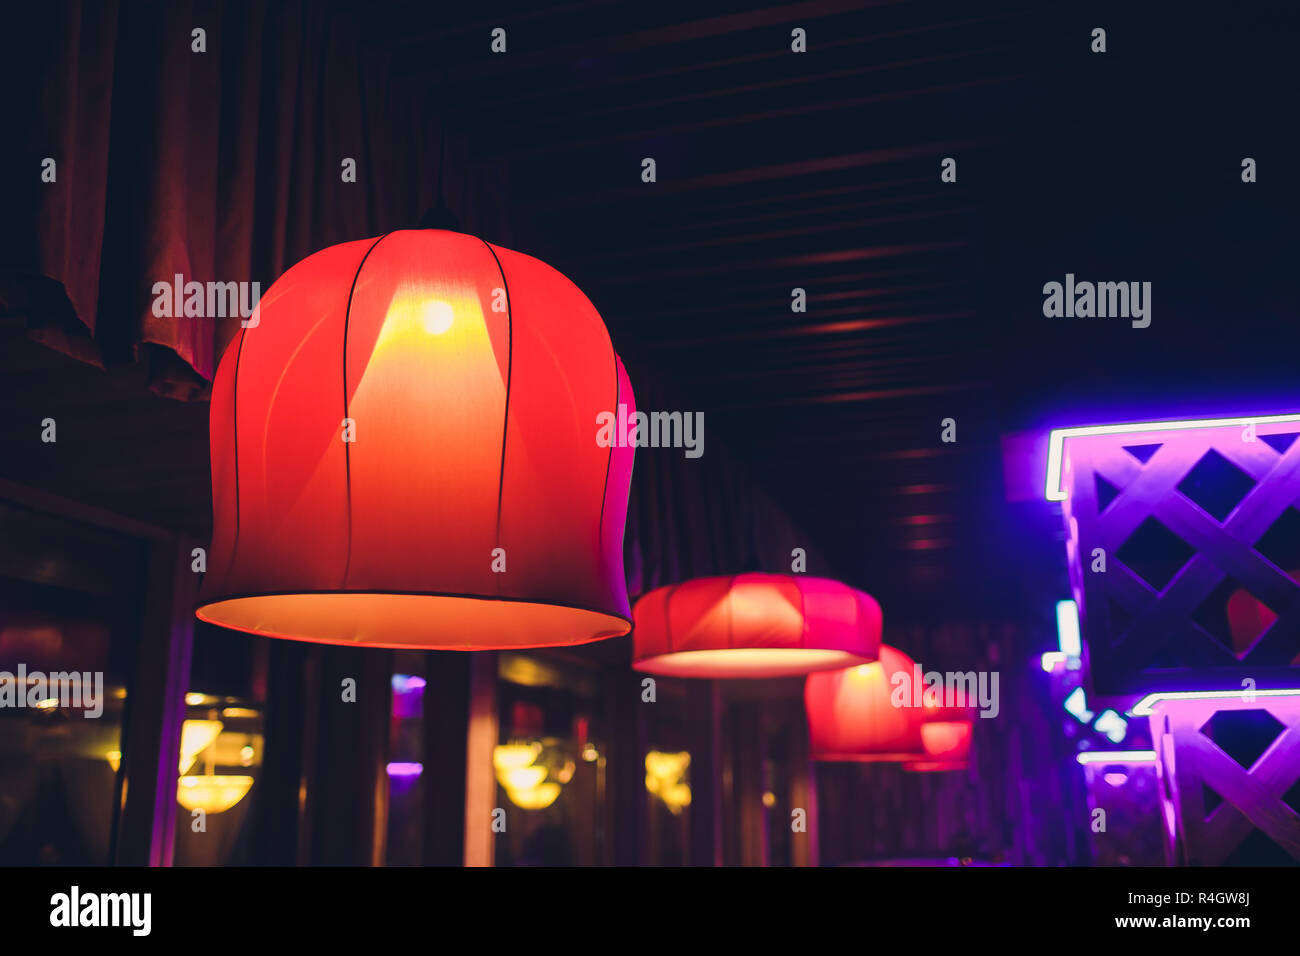 the red lantern chandelier in chinese traditional style on the mezzanine Stock Photo